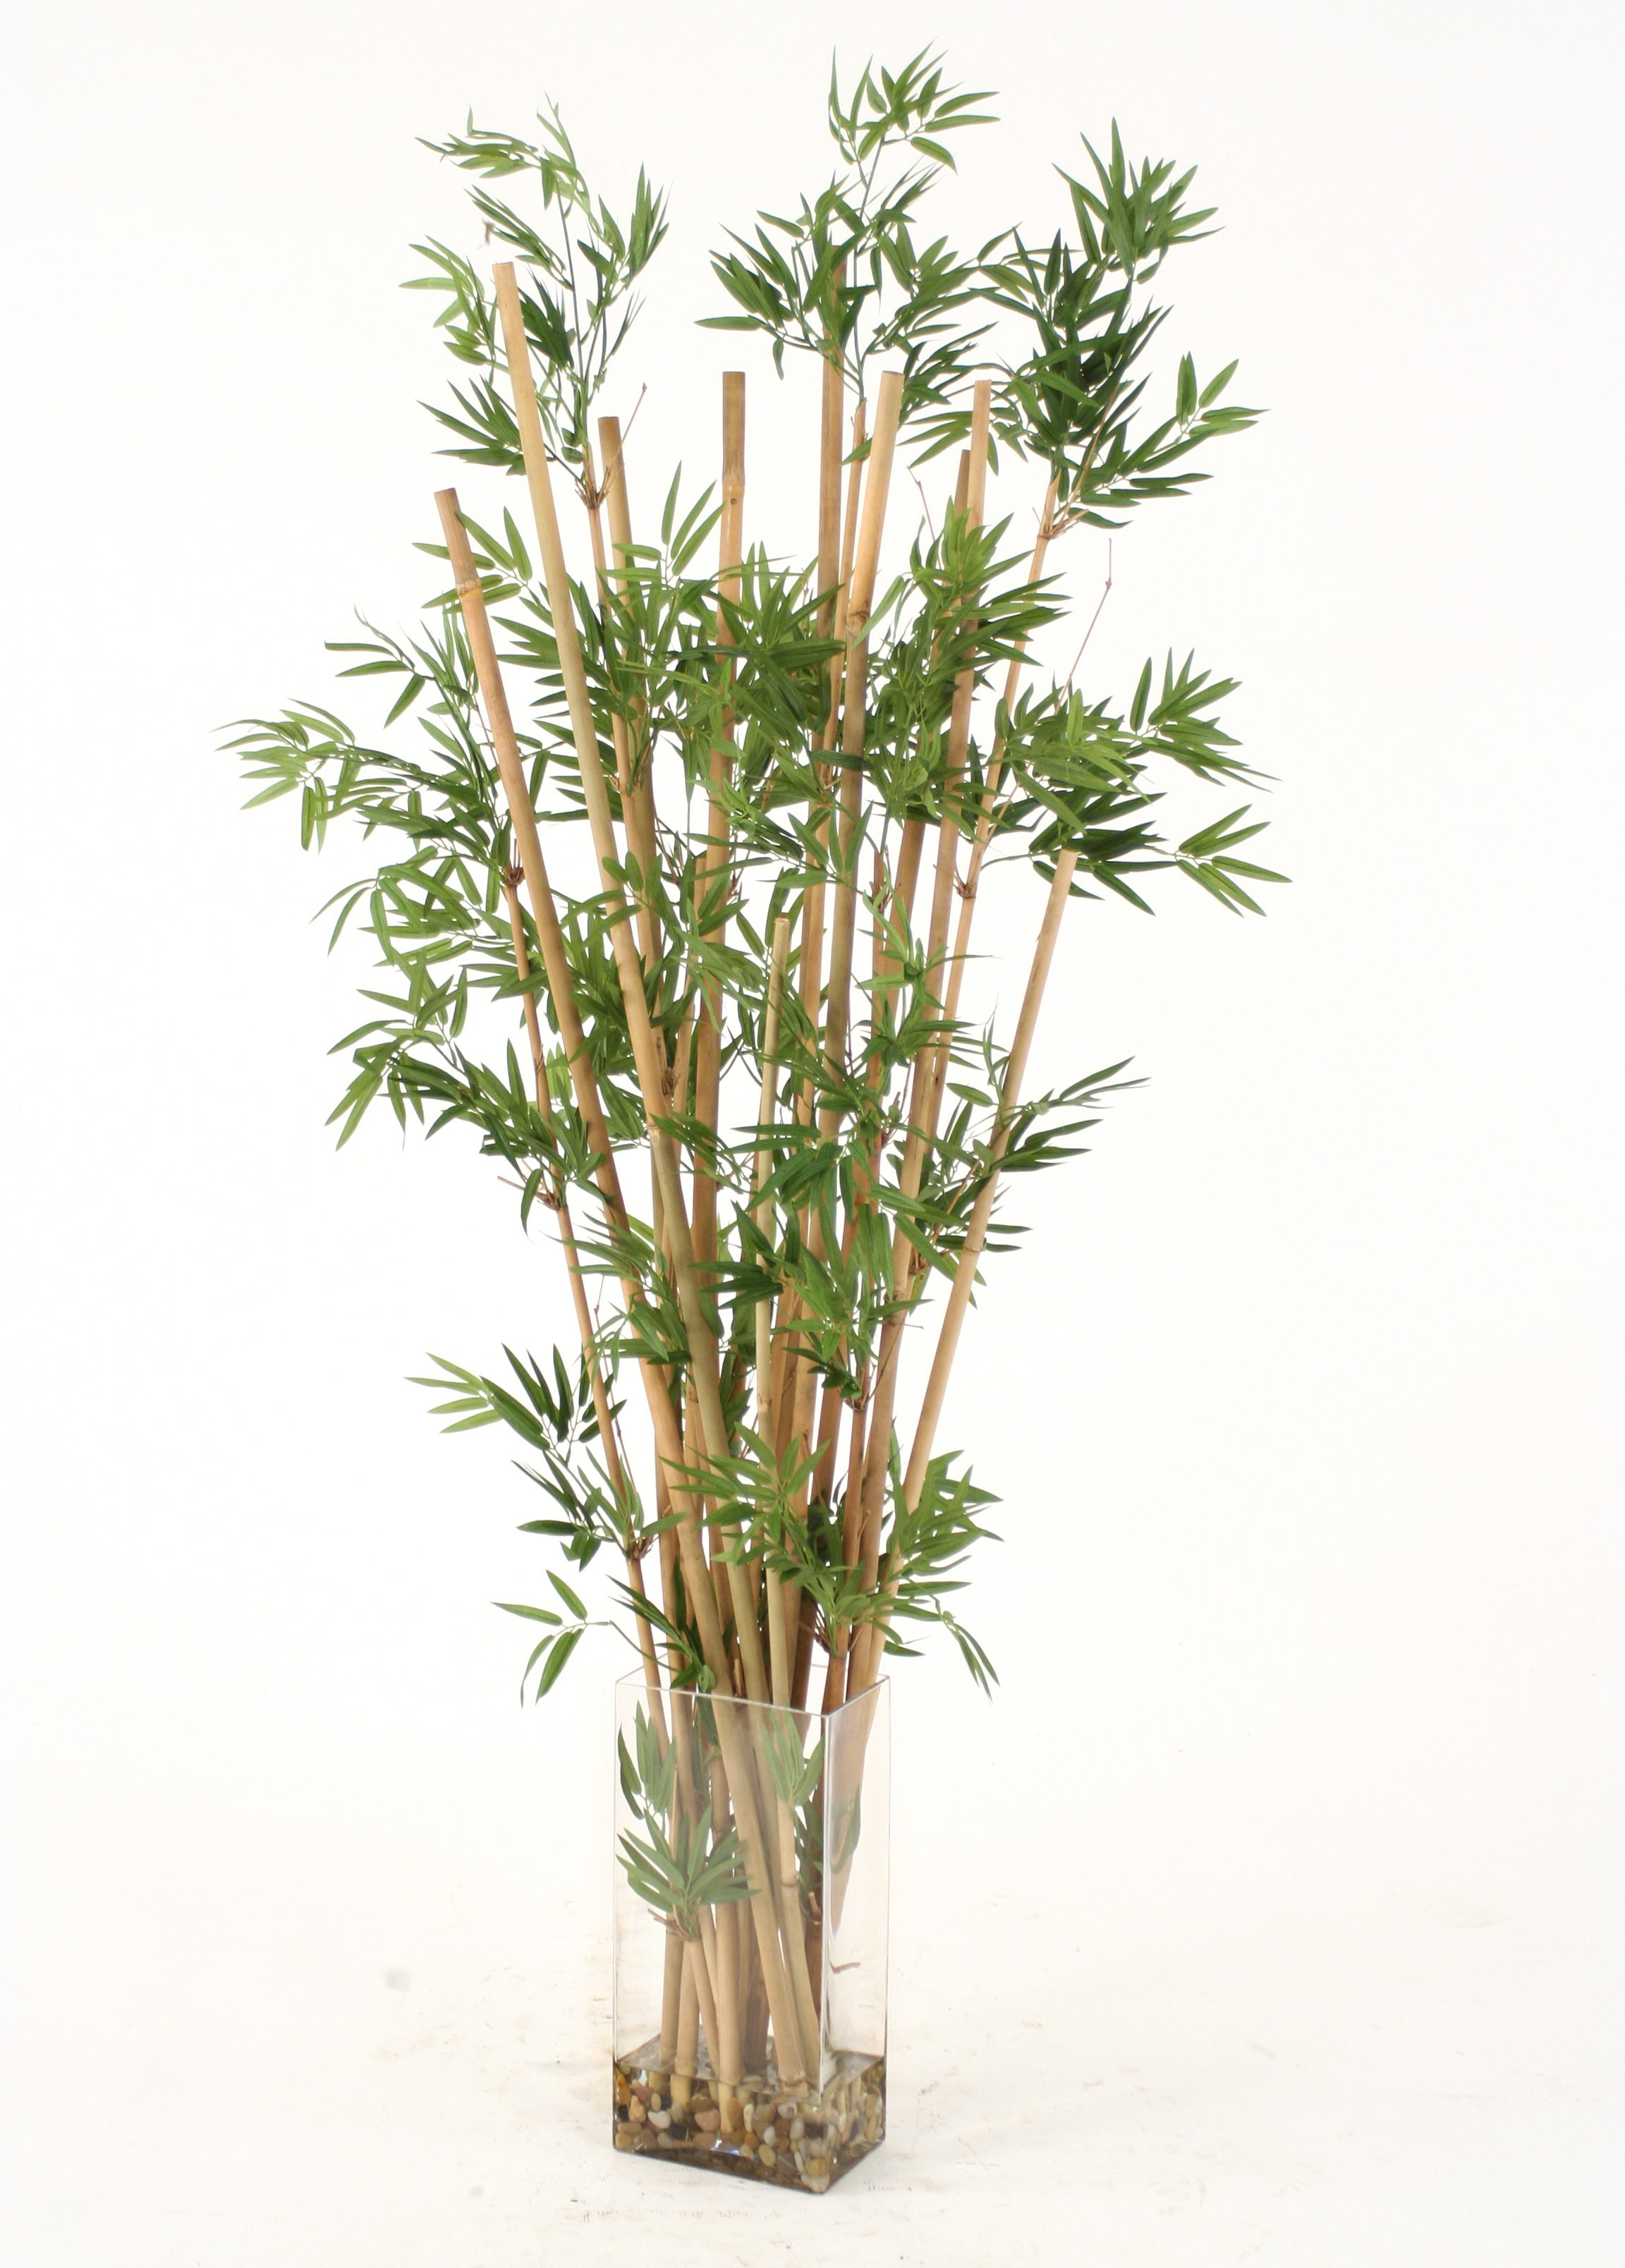 Waterlook 174 Faux Leafy Bamboo In A Tall Glass Vase Free